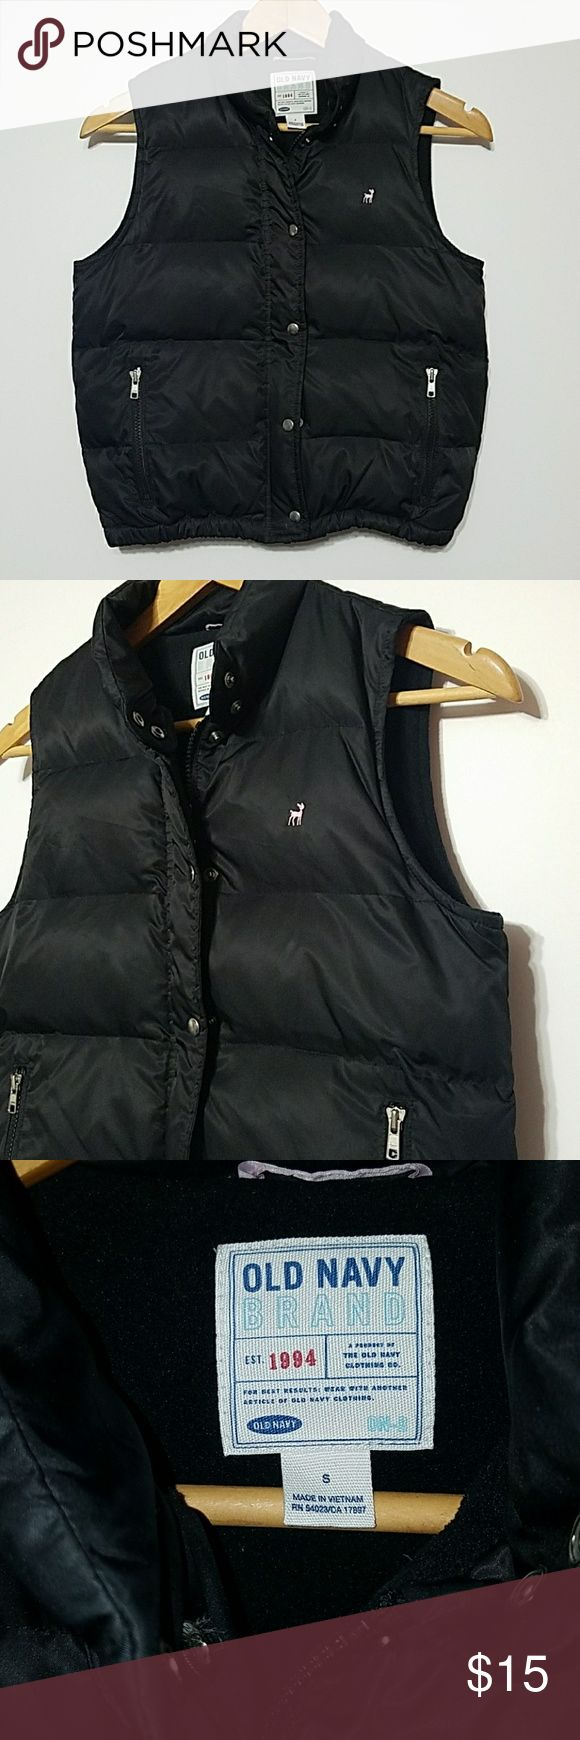 OLD NAVY VEST  (S) OLD NAVY PUFFER VEST IN GREAT PRE-OWNED CONDITION  18' FROM UNDERARM TO UNDERARM  20' LENGTH Old Navy Jackets & Coats Vests